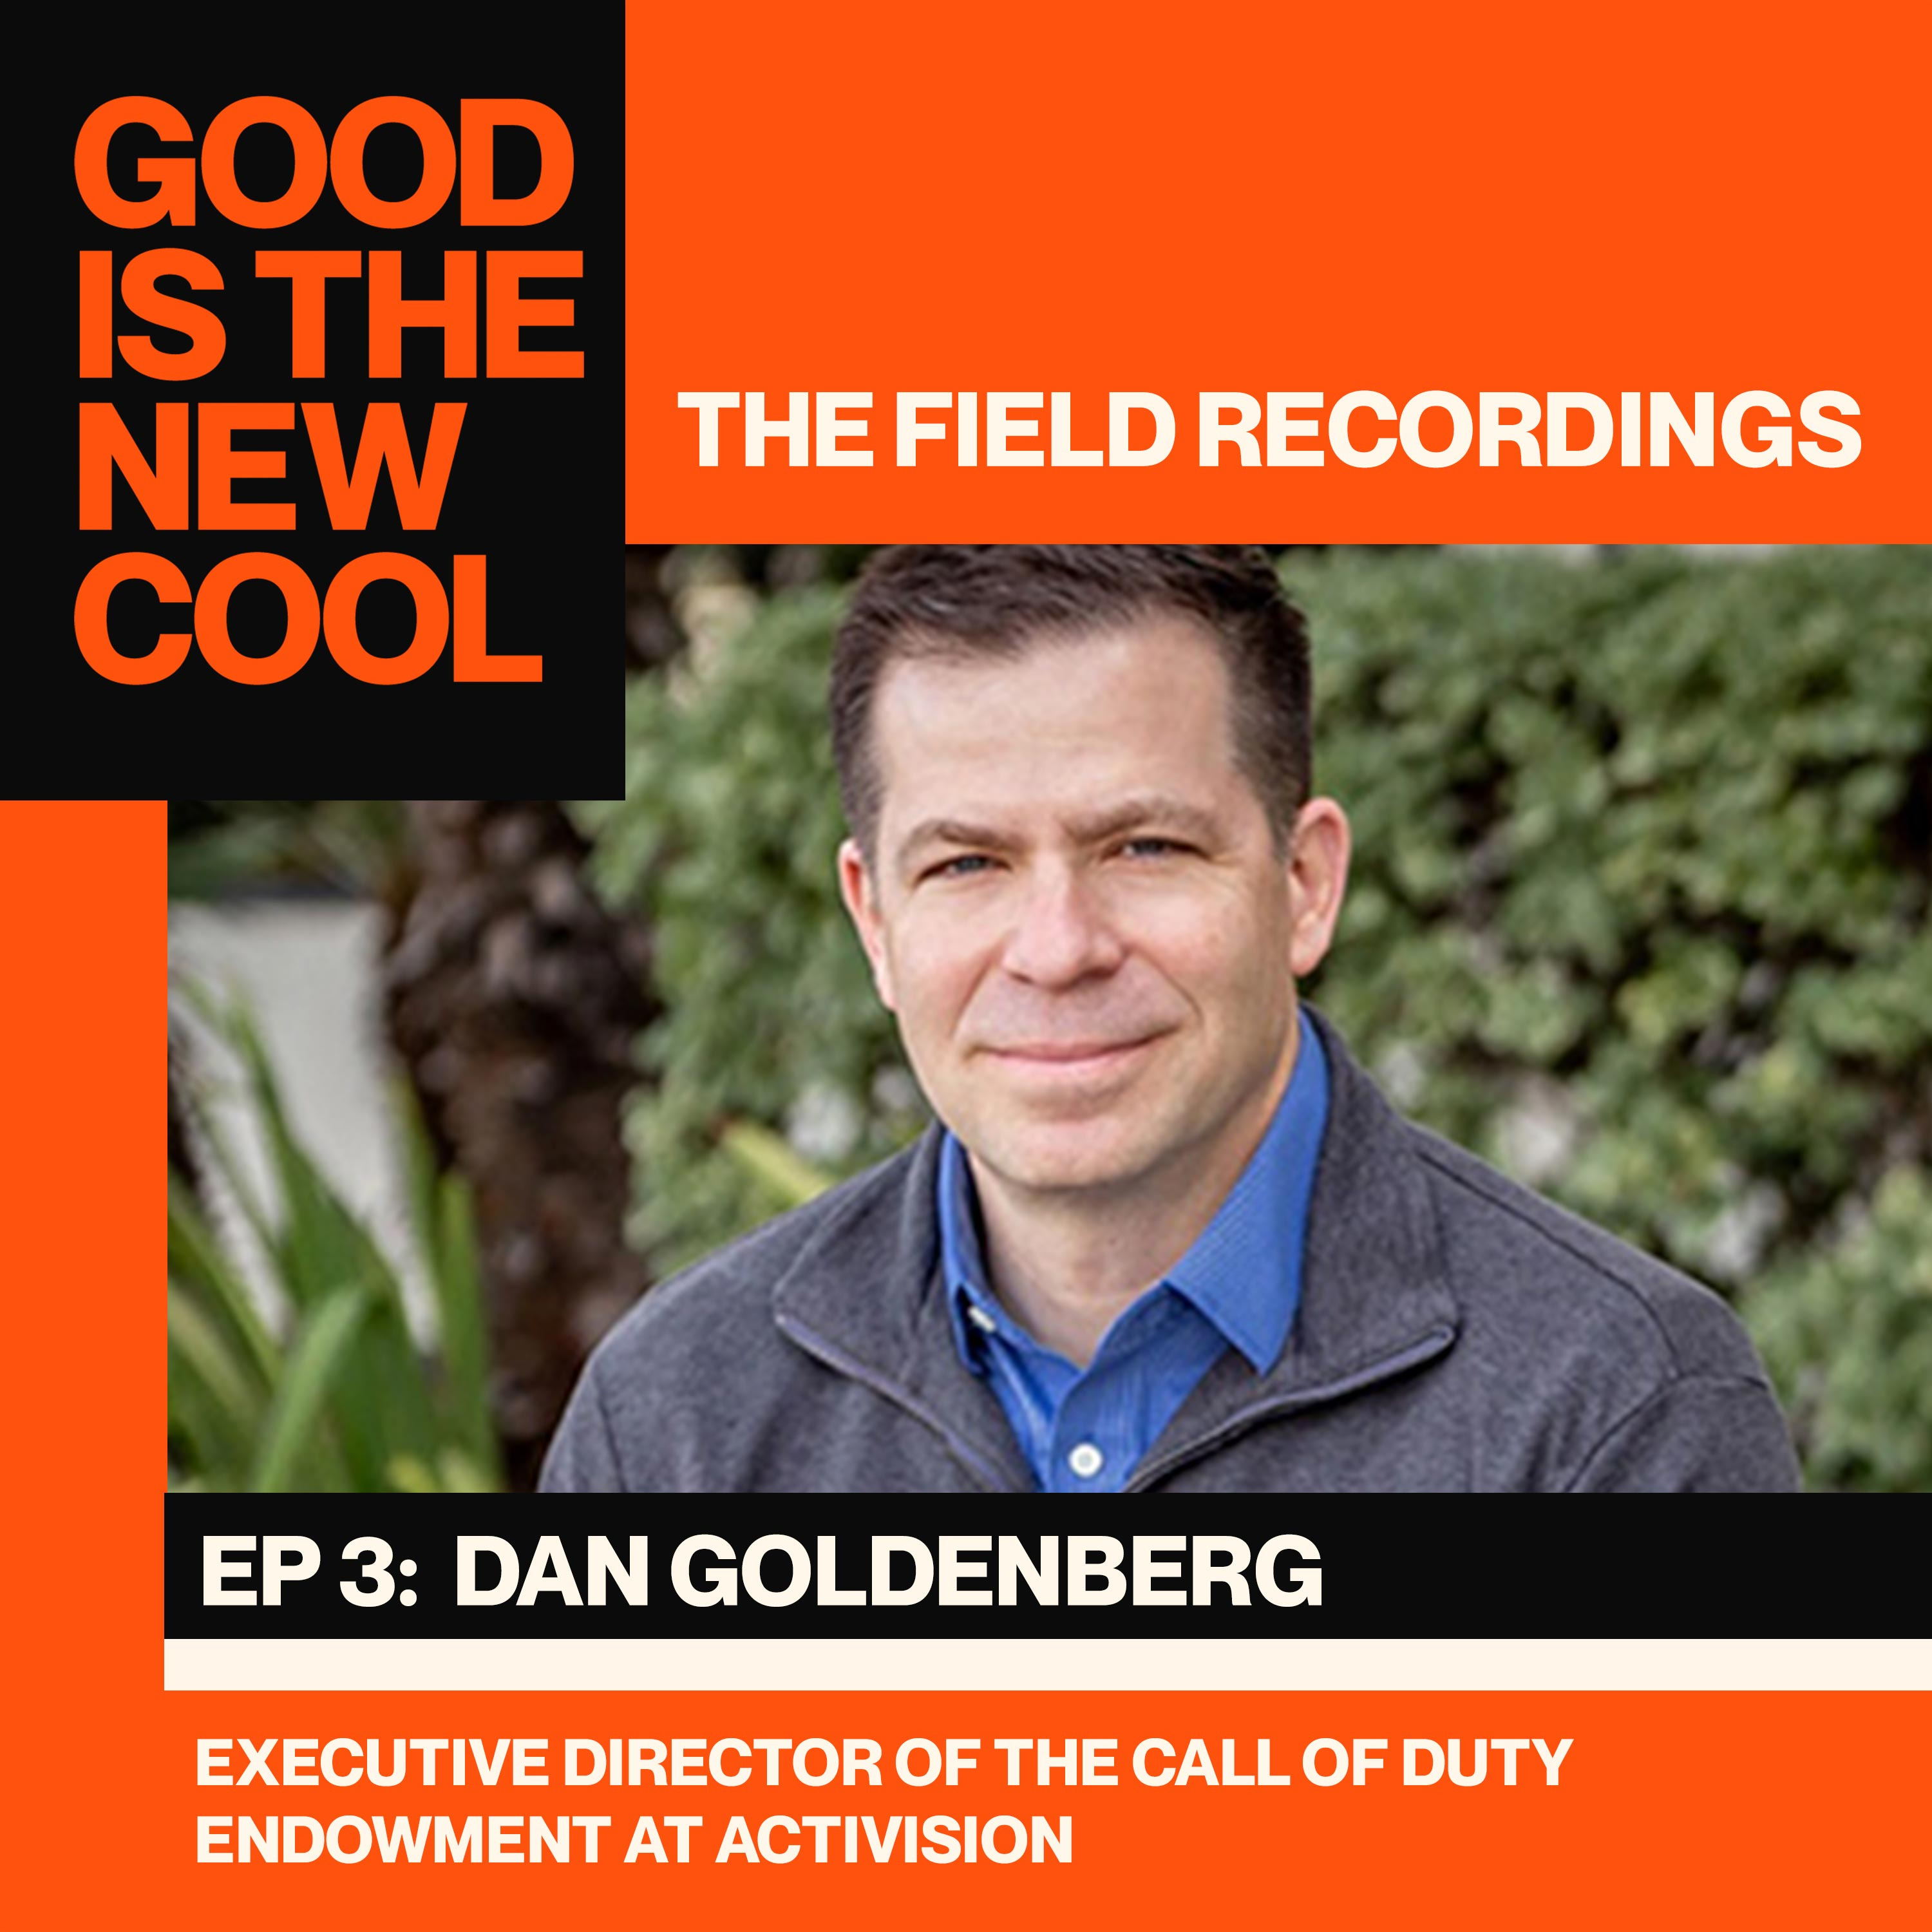 Artwork for podcast Good Is The New Cool